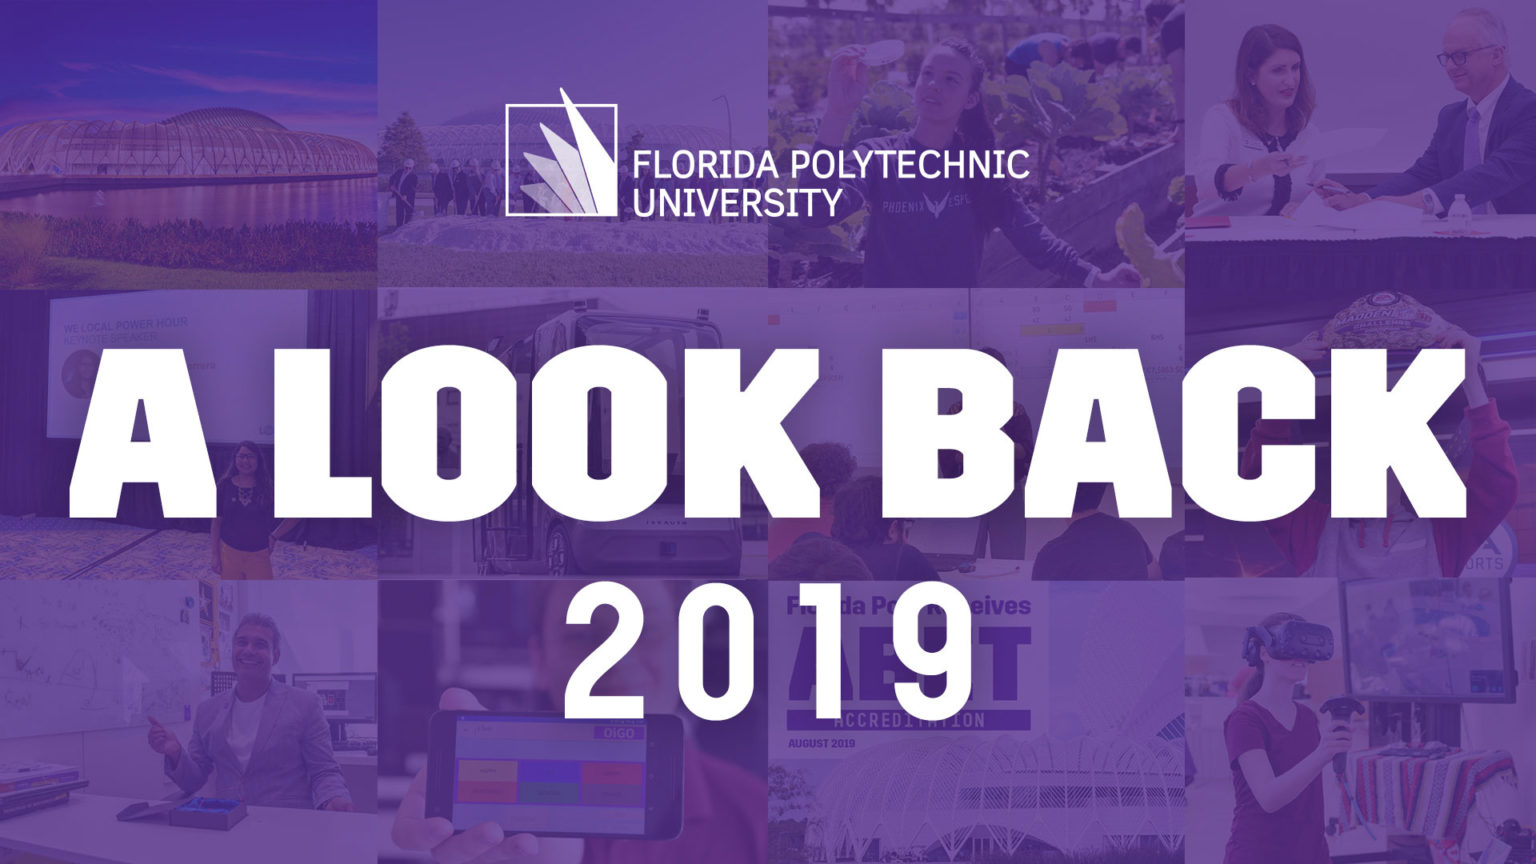 2019 Florida Poly look back